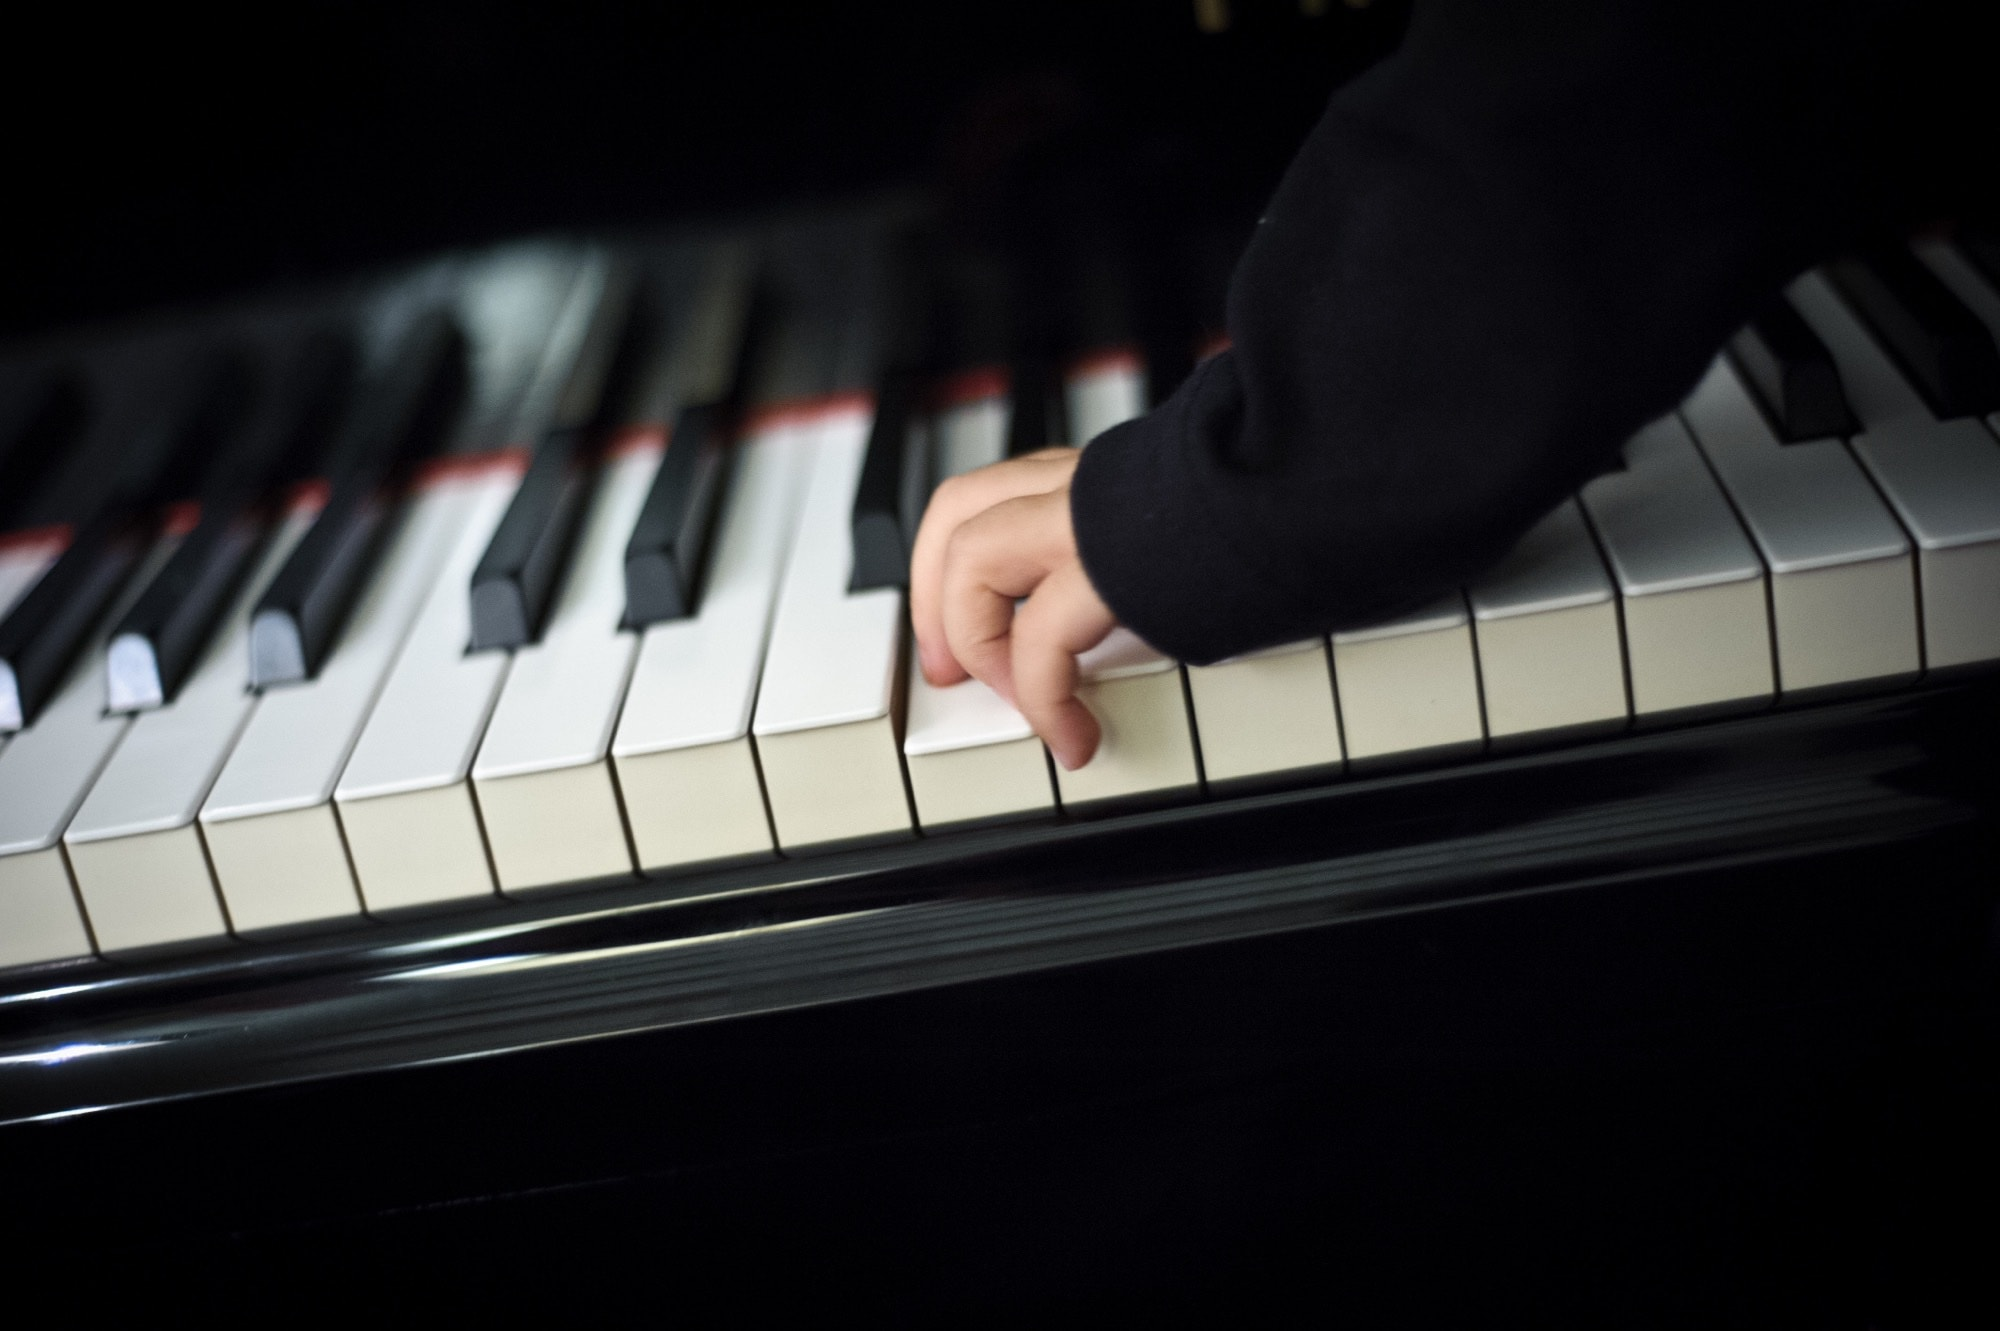 No pianist prefers a screen over a real keyboard.